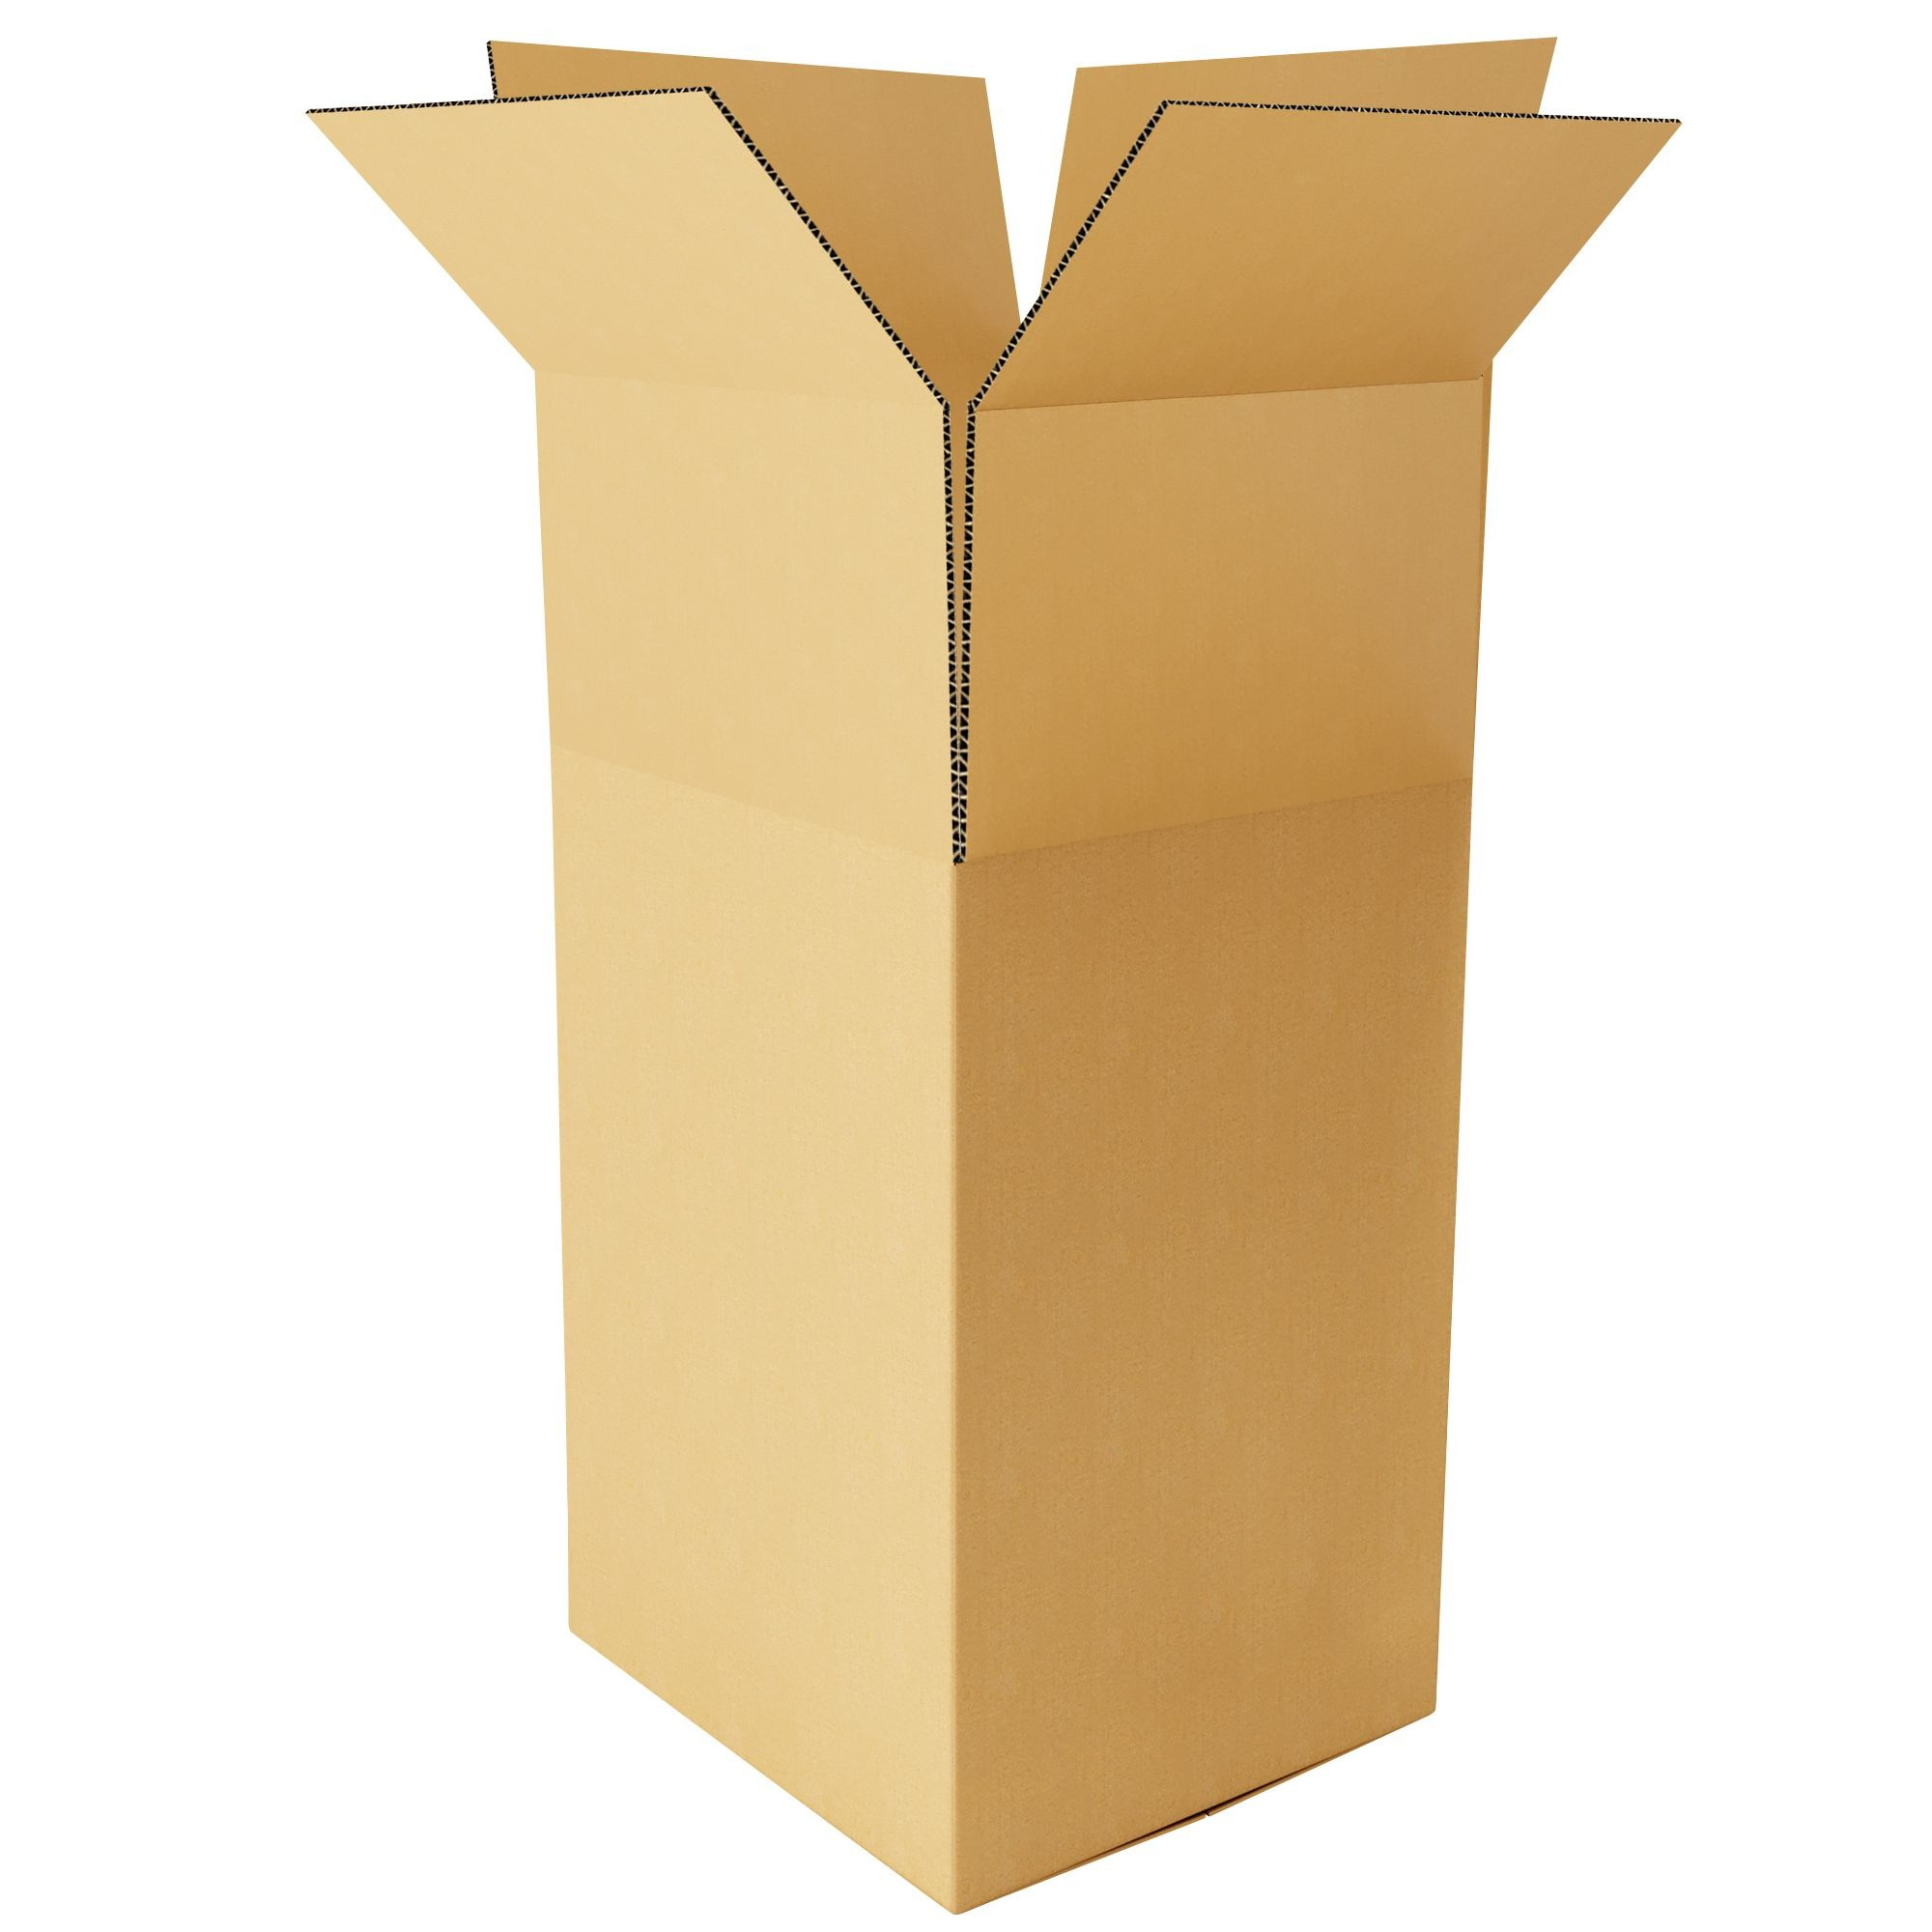 "TOTALPACK® 24 x 21 x 45 3/4"" Double Wall Corrugated Box 1 Unit"